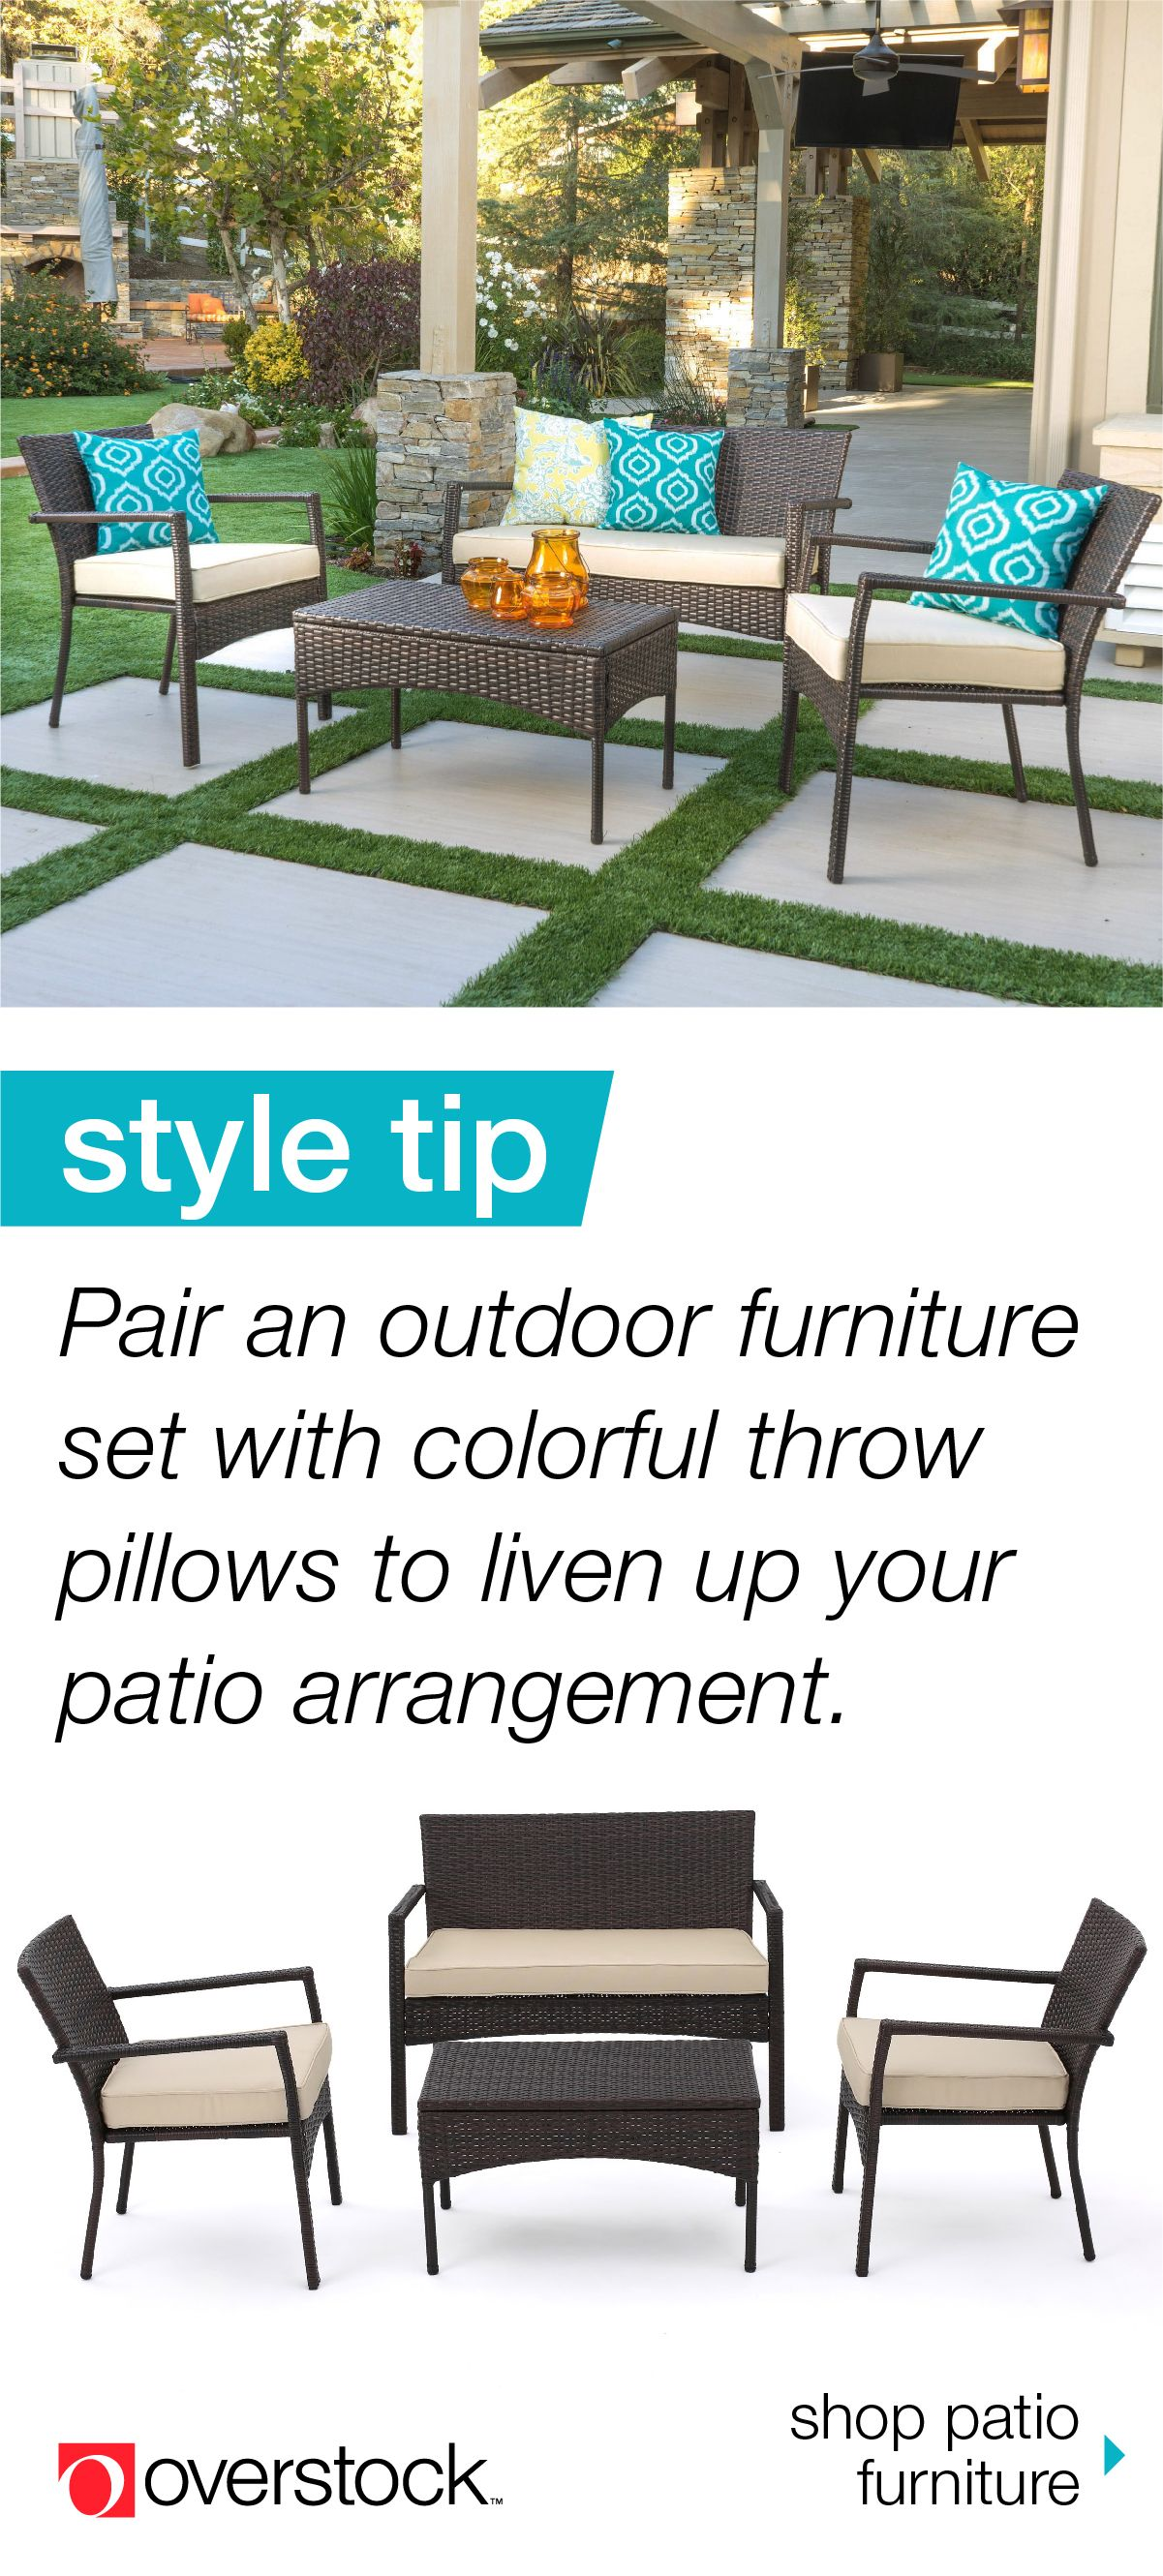 Find The Perfect Patio Set For Your Space At Overstock Com Shop Our